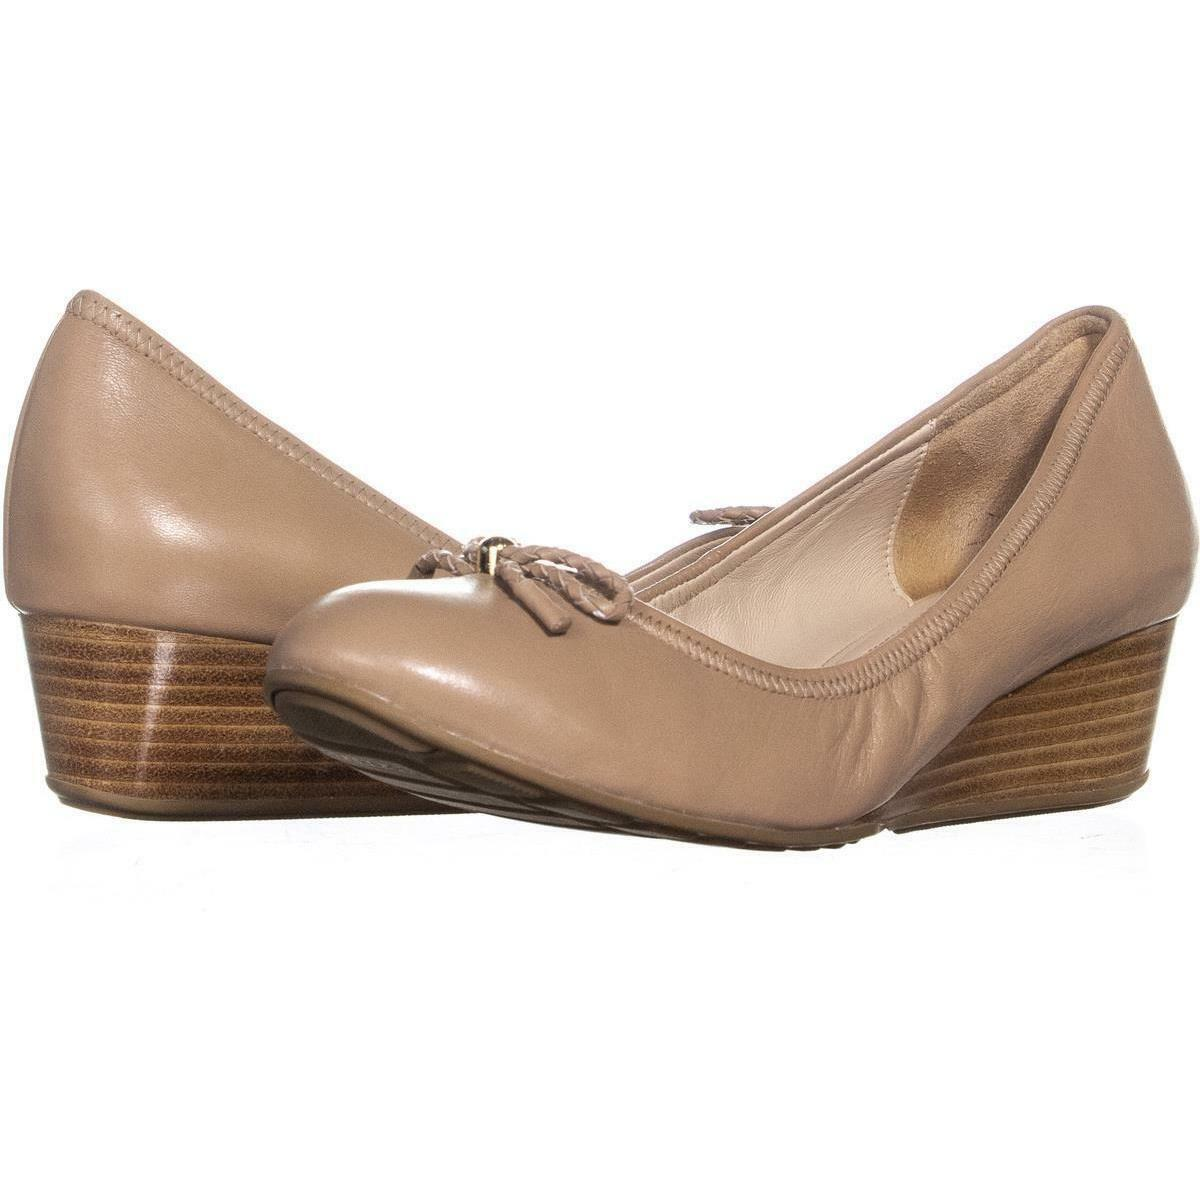 Cole Haan Tali Grand Lace Wedge Wedge Wedge Pumps 889, Maple Sugar, 6.5 UK 0dfdb6